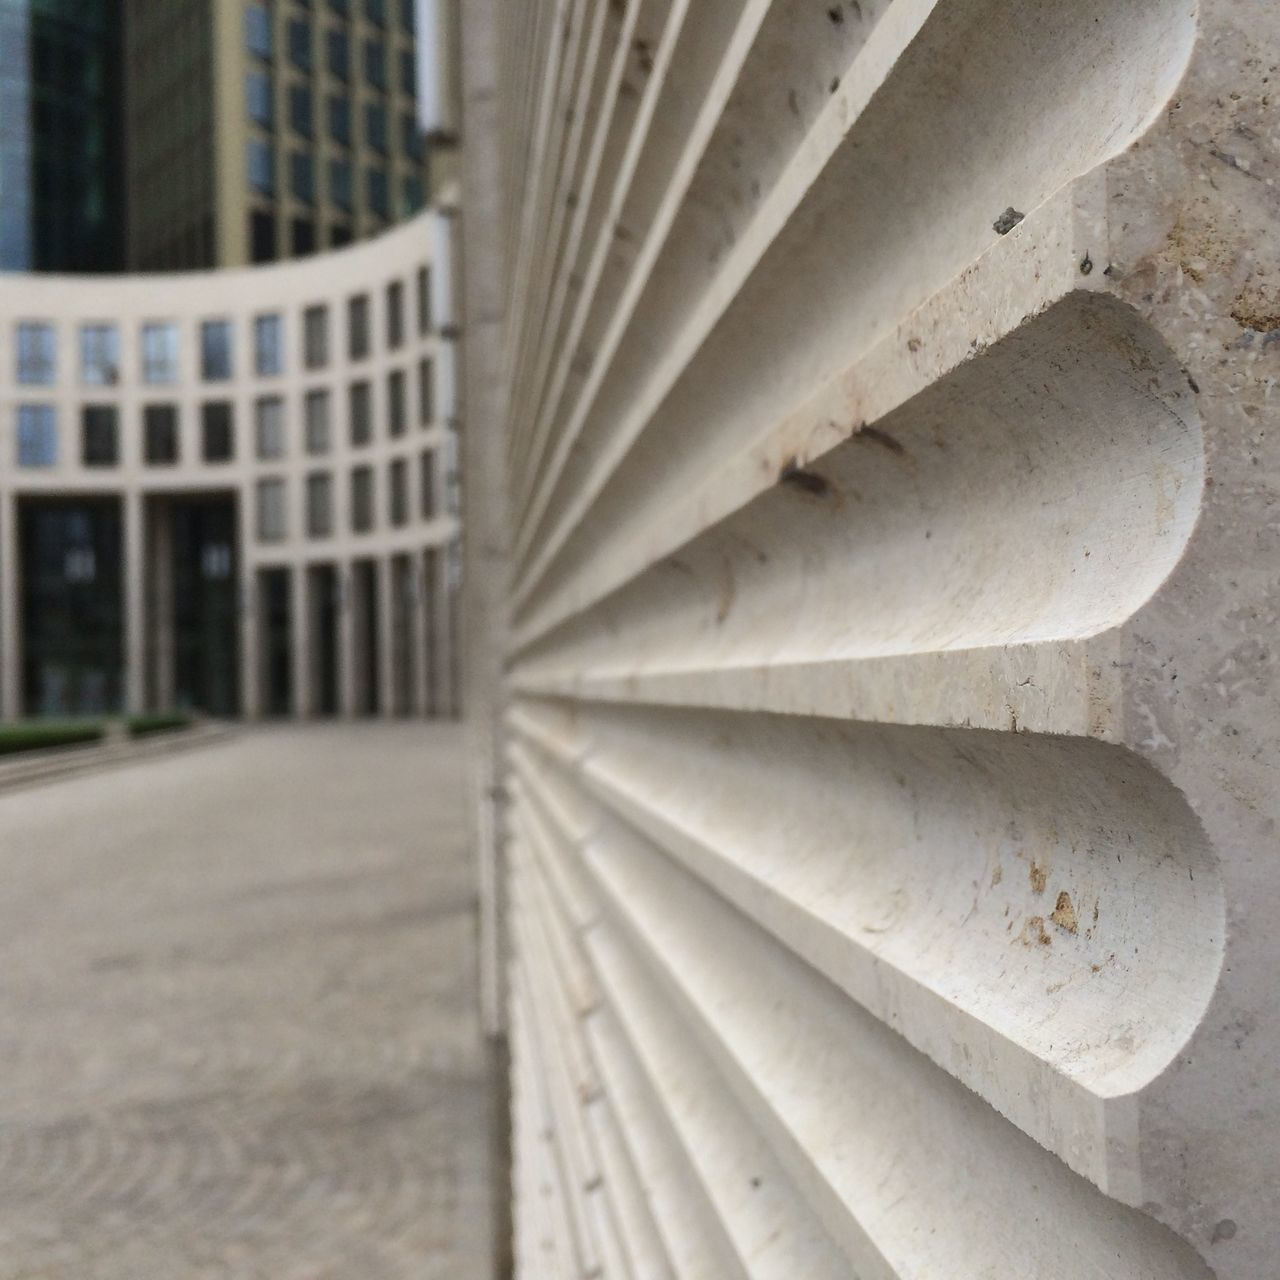 built structure, architecture, no people, building exterior, building, close-up, pattern, white color, focus on foreground, city, steps and staircases, staircase, day, outdoors, empty, railing, design, repetition, concrete